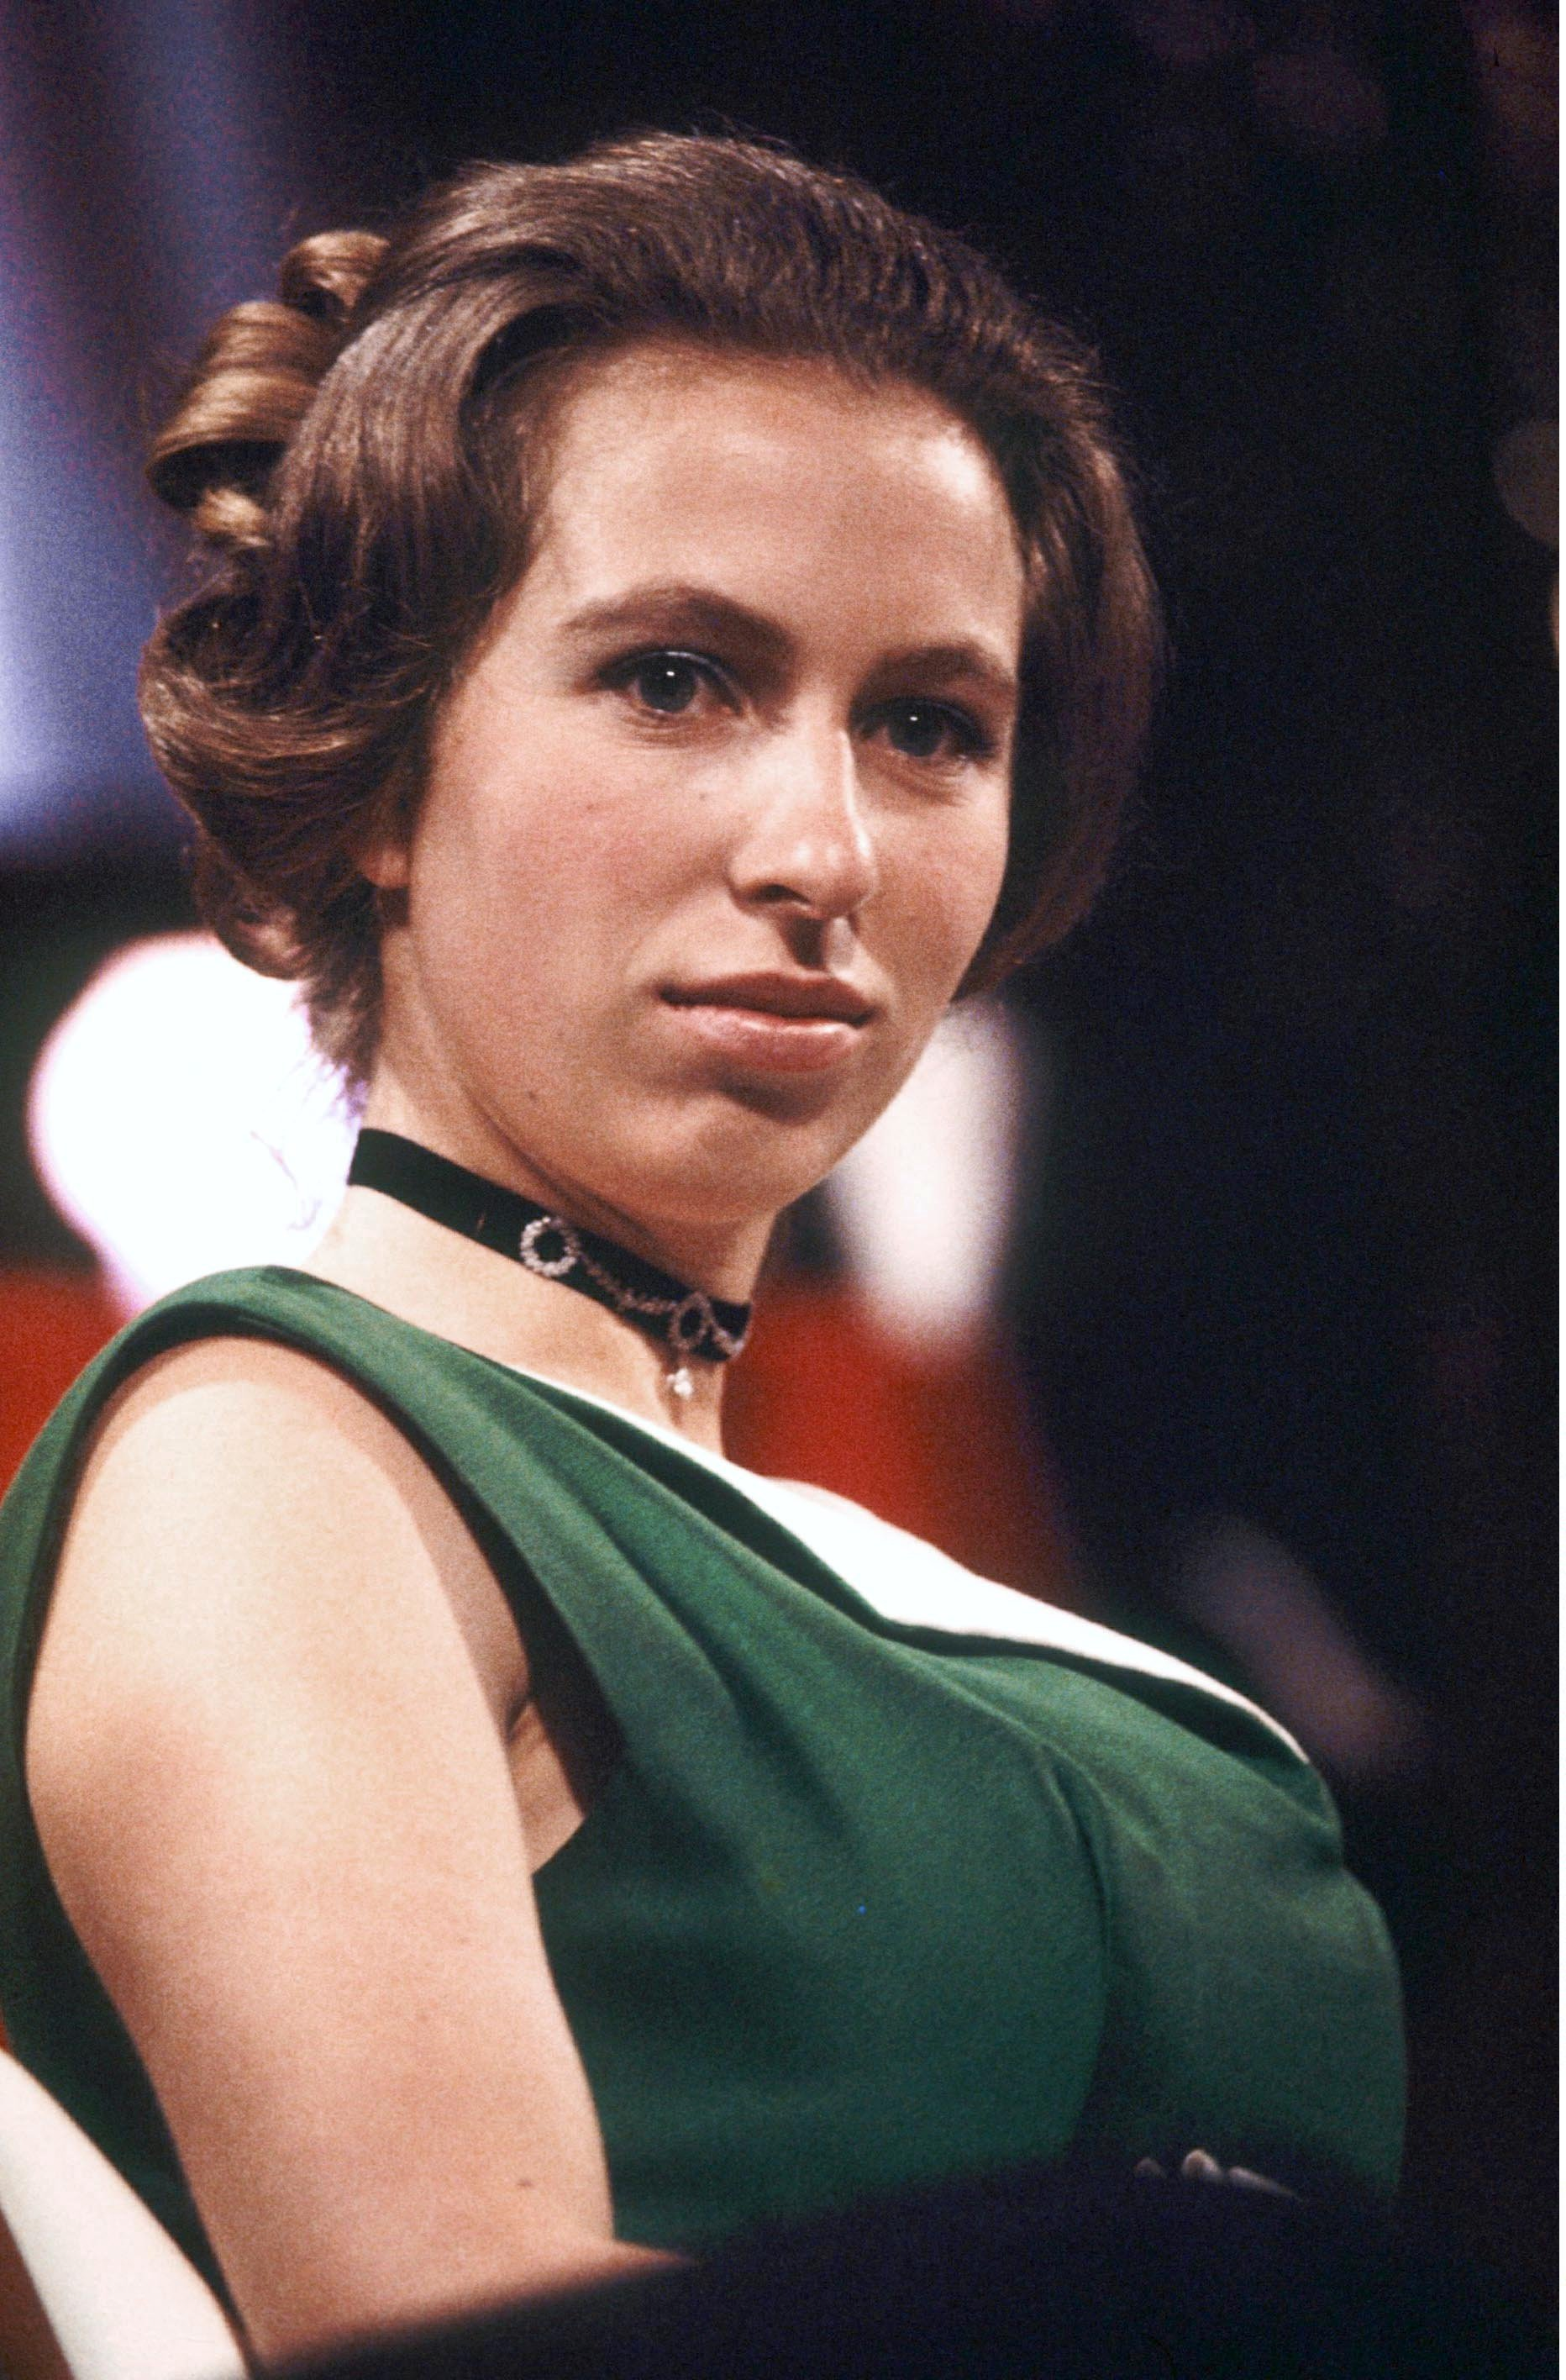 La princesse Anne assiste à la Society of Film and Television Awards, qui deviendra plus tard BAFTA le 04 mars 1971, à Londres, en Angleterre.  |  Source: Getty Images.